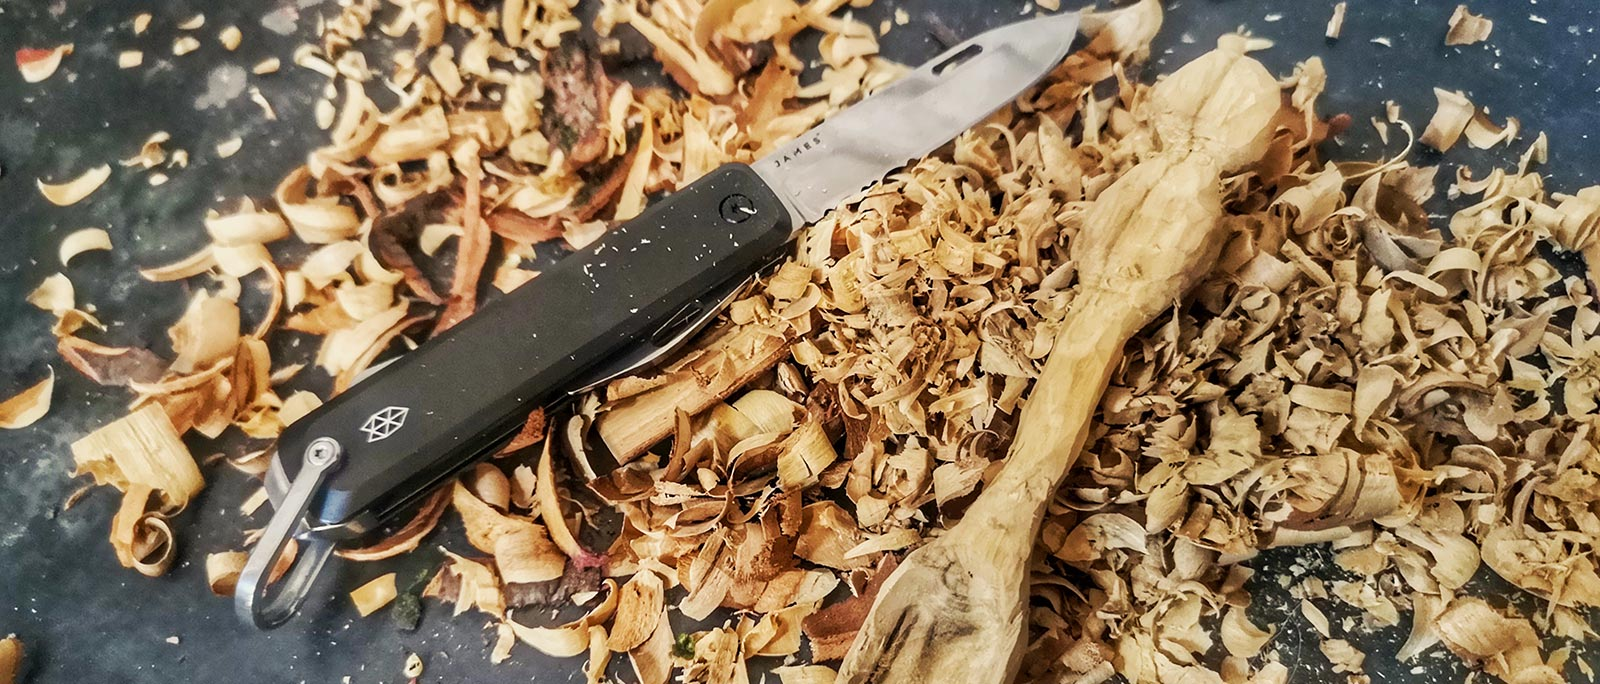 Spooncarving | Simple Spoon Carving | Journal article | Wildbounds